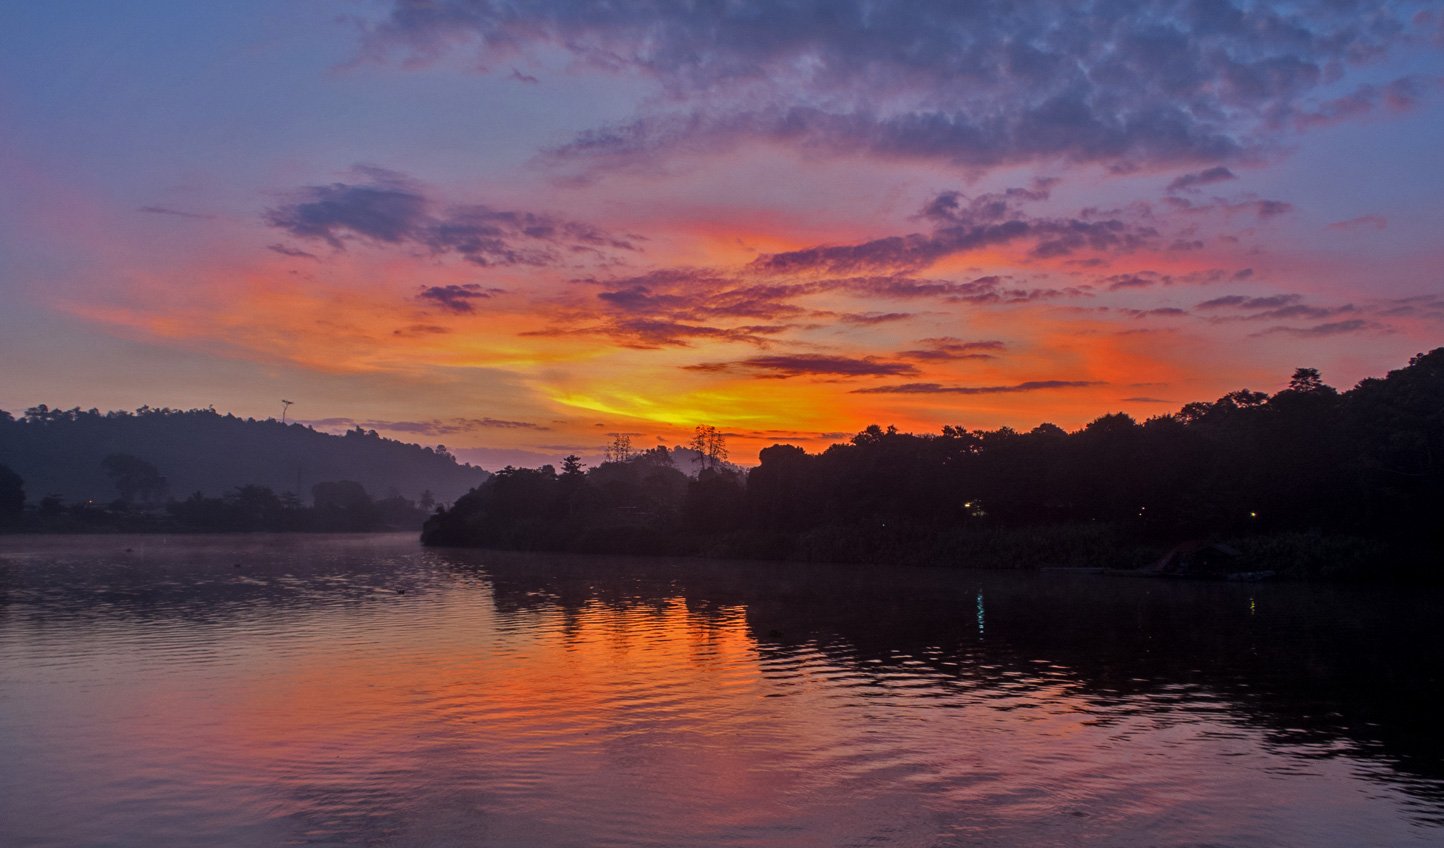 Relish in vibrant sunsets of Borneo